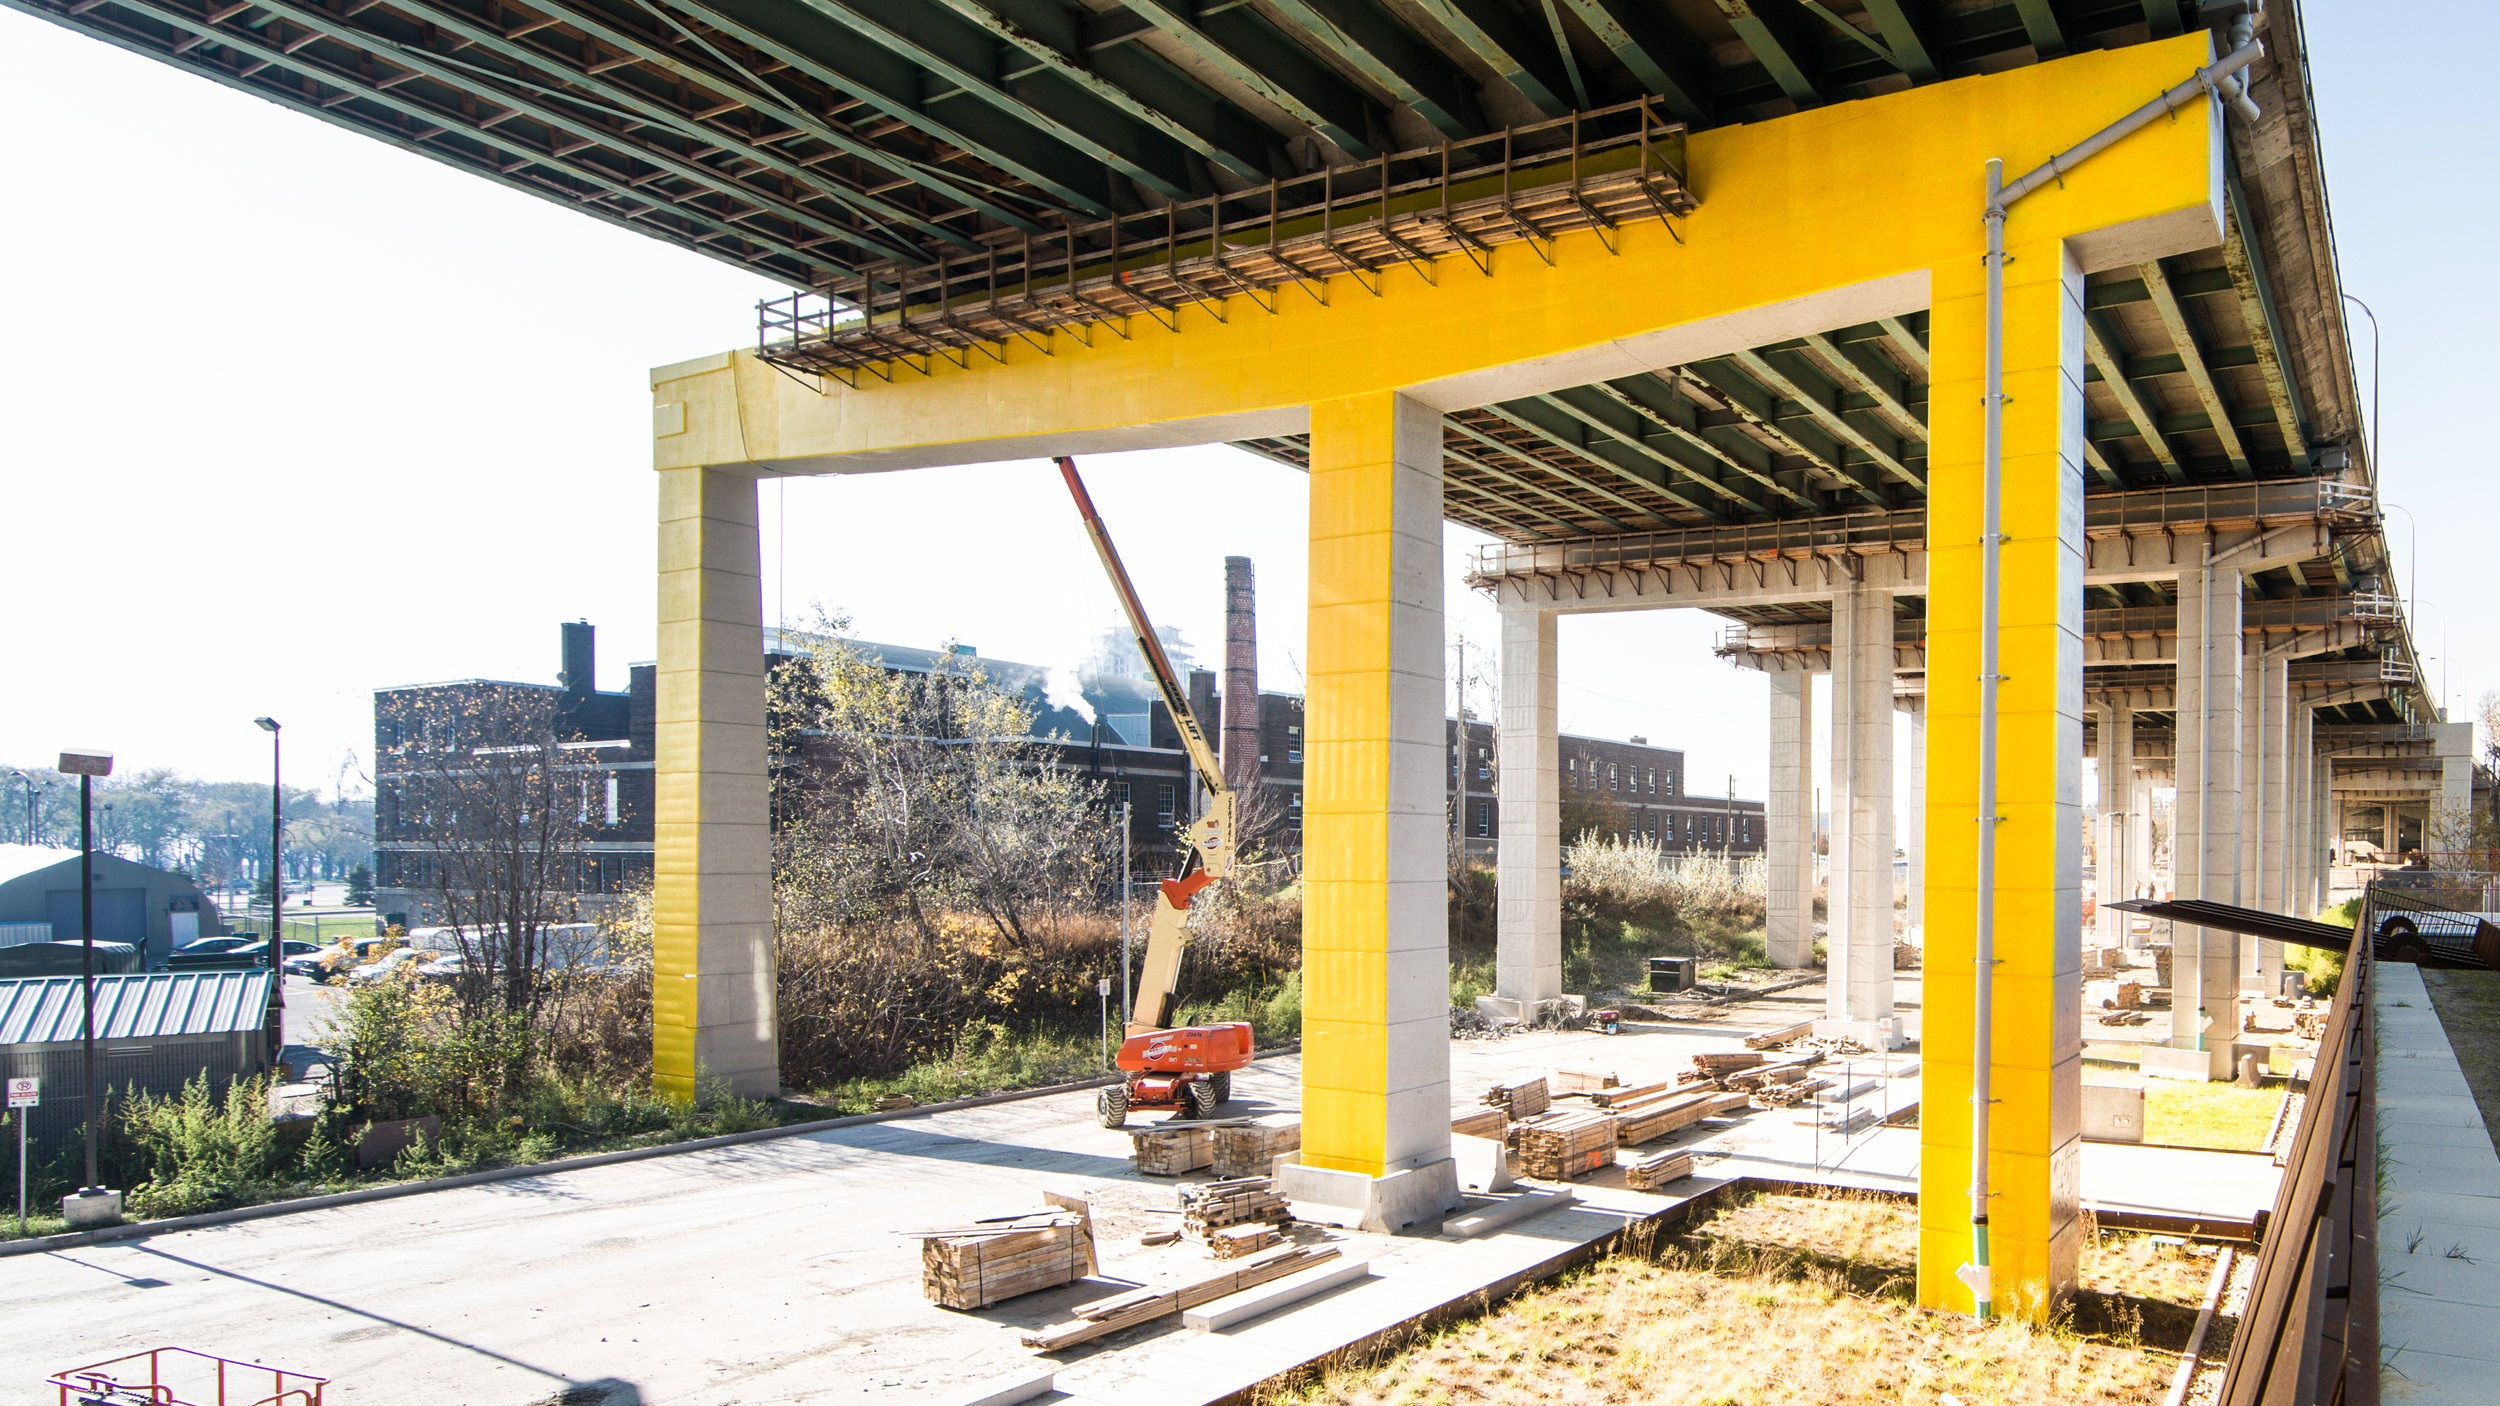 Public Installation for Project: Under Gardiner